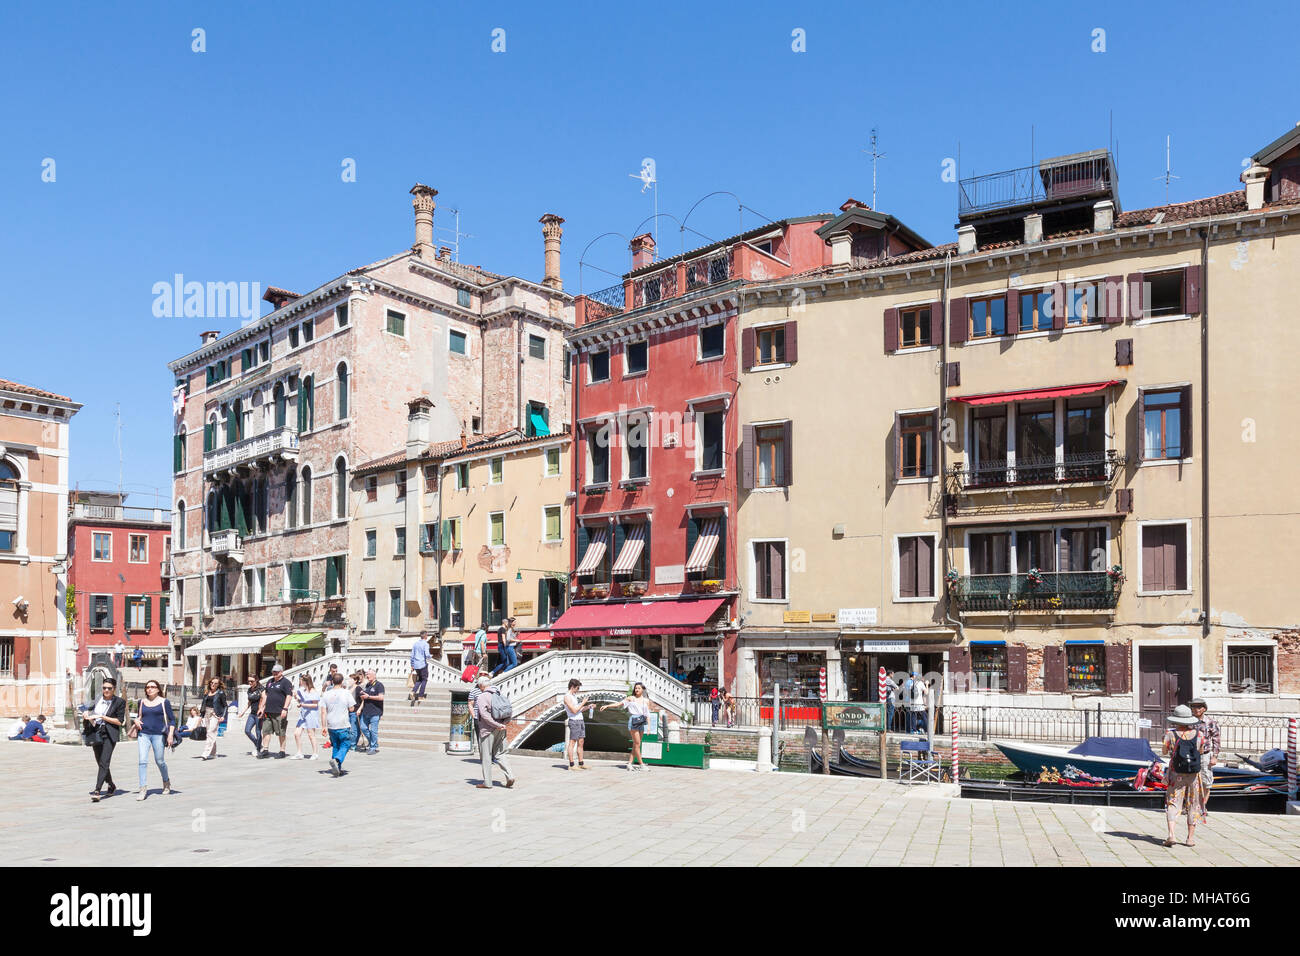 Colorful buildings and bridge on Campo dei Frari, San Polo, Venice, Veneto, Italy with tourists in spring - Stock Image